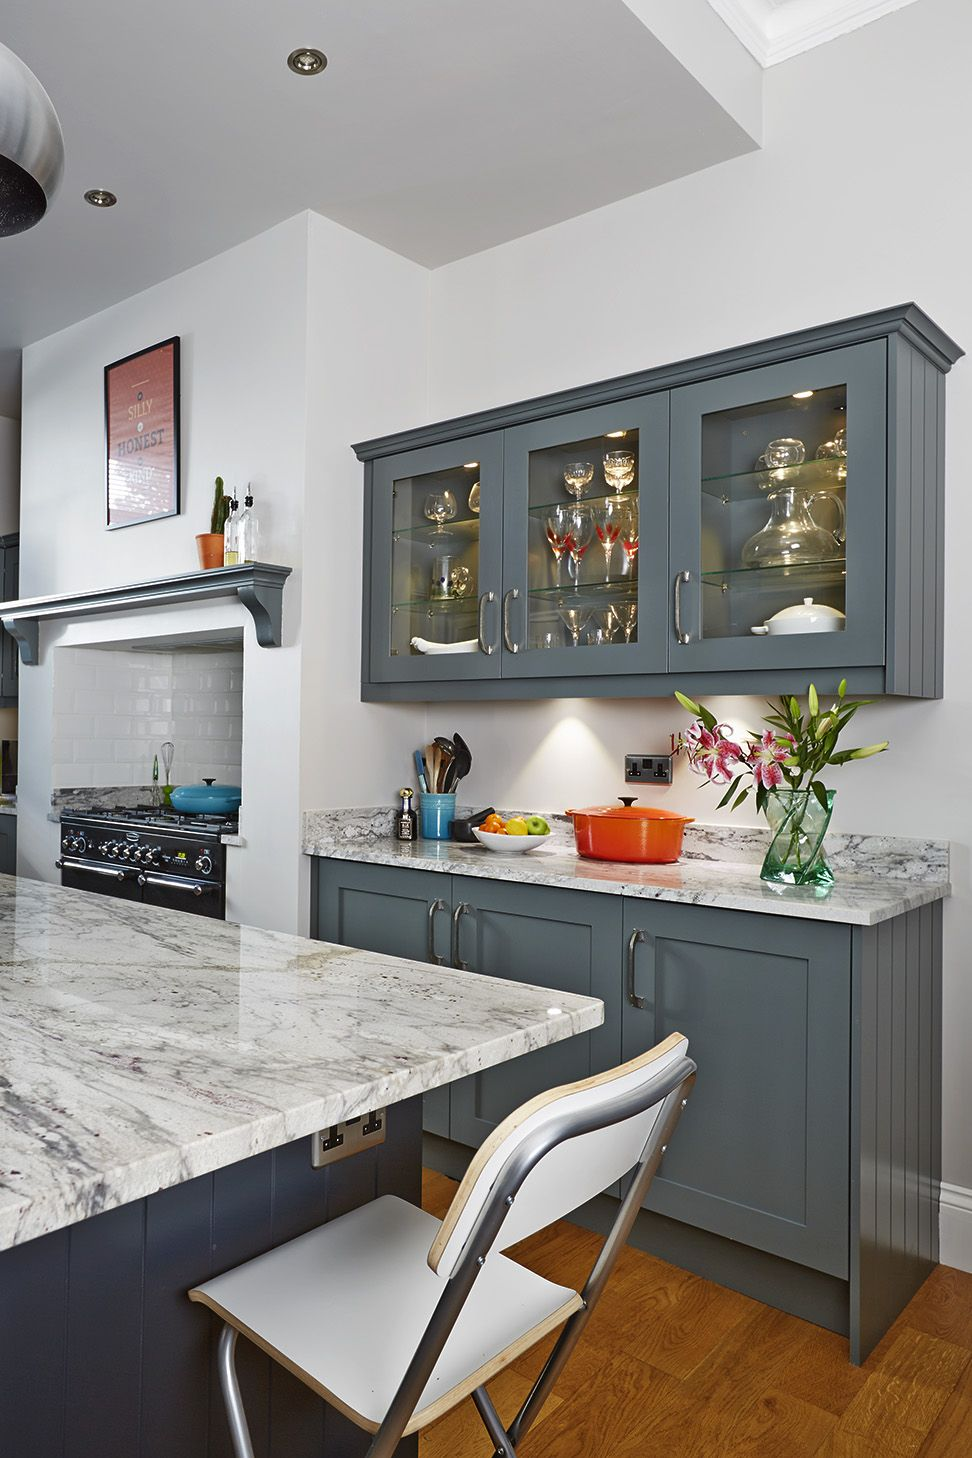 Painting Kitchen Cabinets Blog Kitchen Cabinets Painted In Farrow Ball Downpipe Island Painted